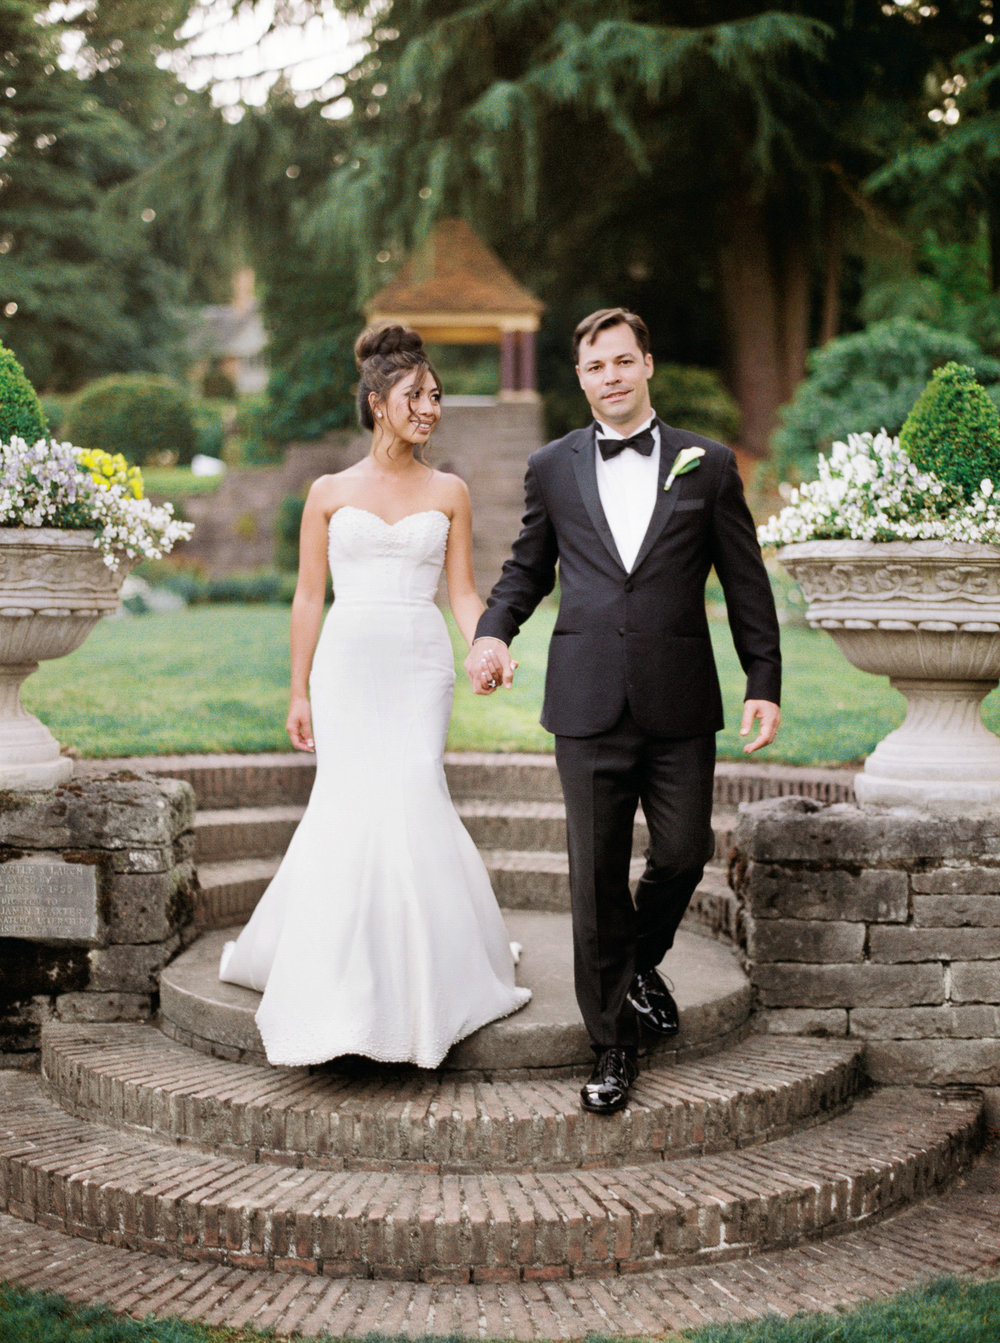 108OutliveCreative_Travel_Photographer_Videographer_Lewis&Clark_Oregon_Elegant_BlackTie_Destination_Wedding.jpg